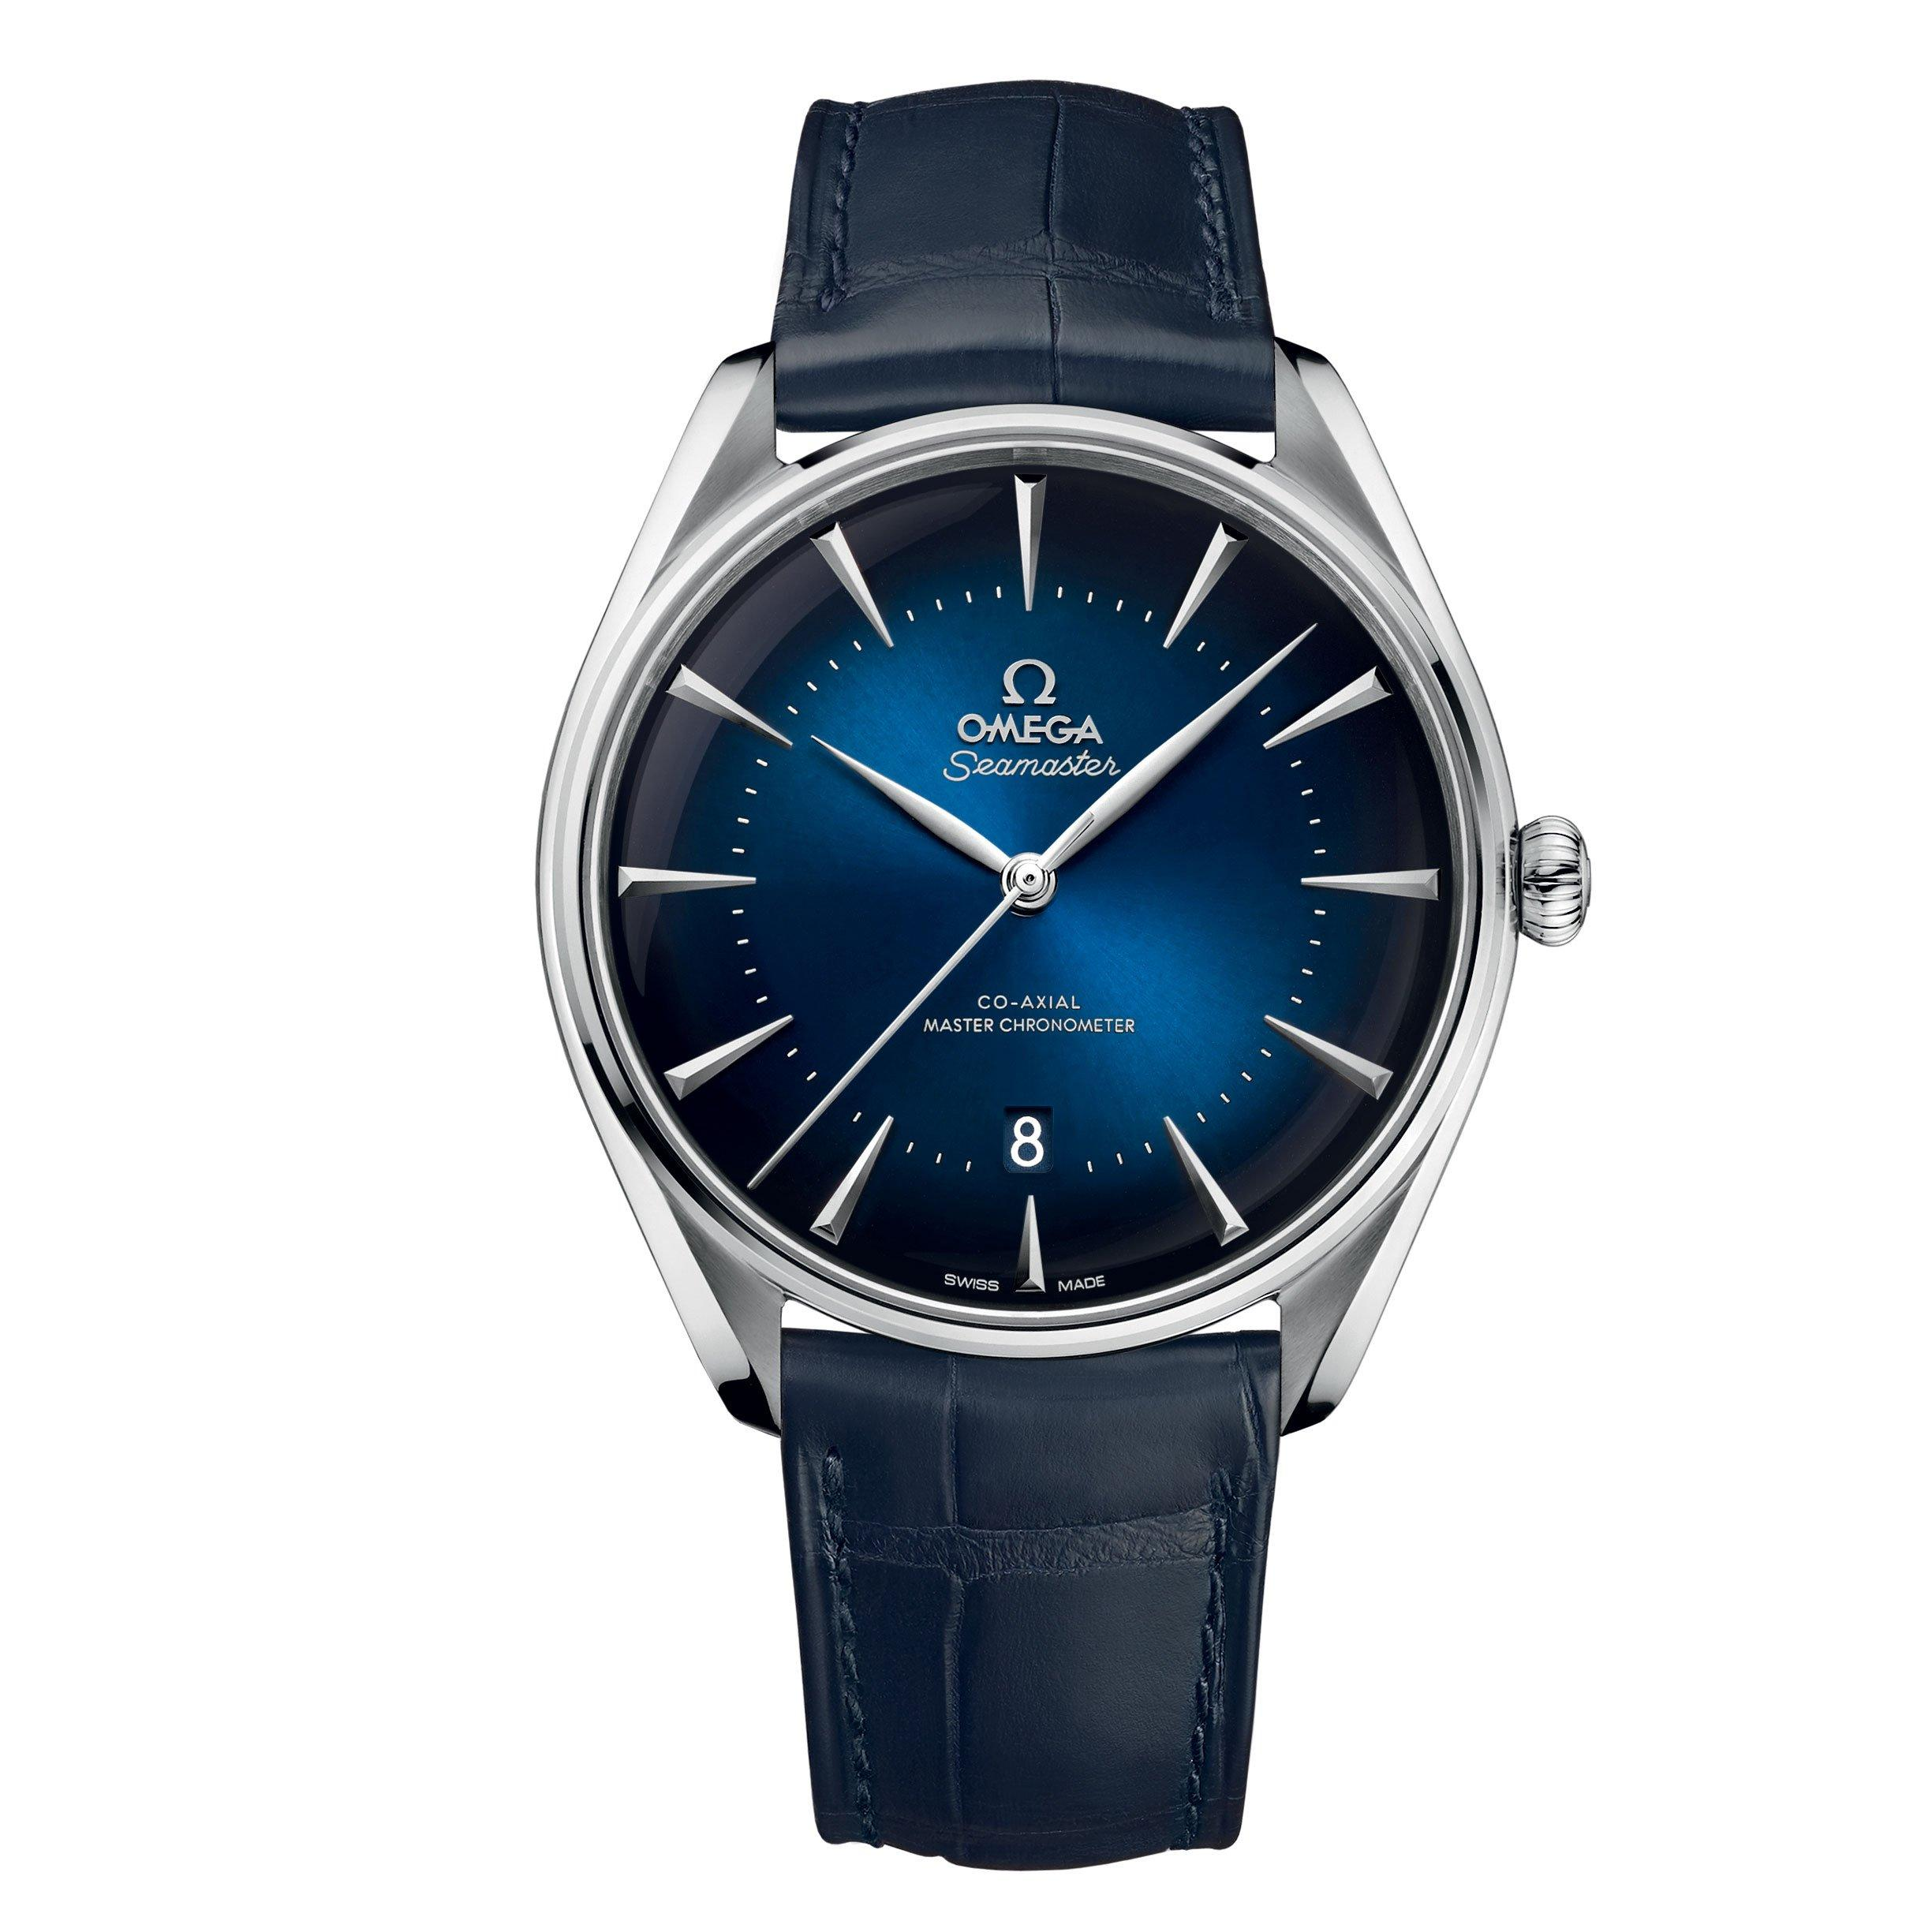 OMEGA Seamaster Exclusive Boutique London Limited Edition Automatic Men's Watch